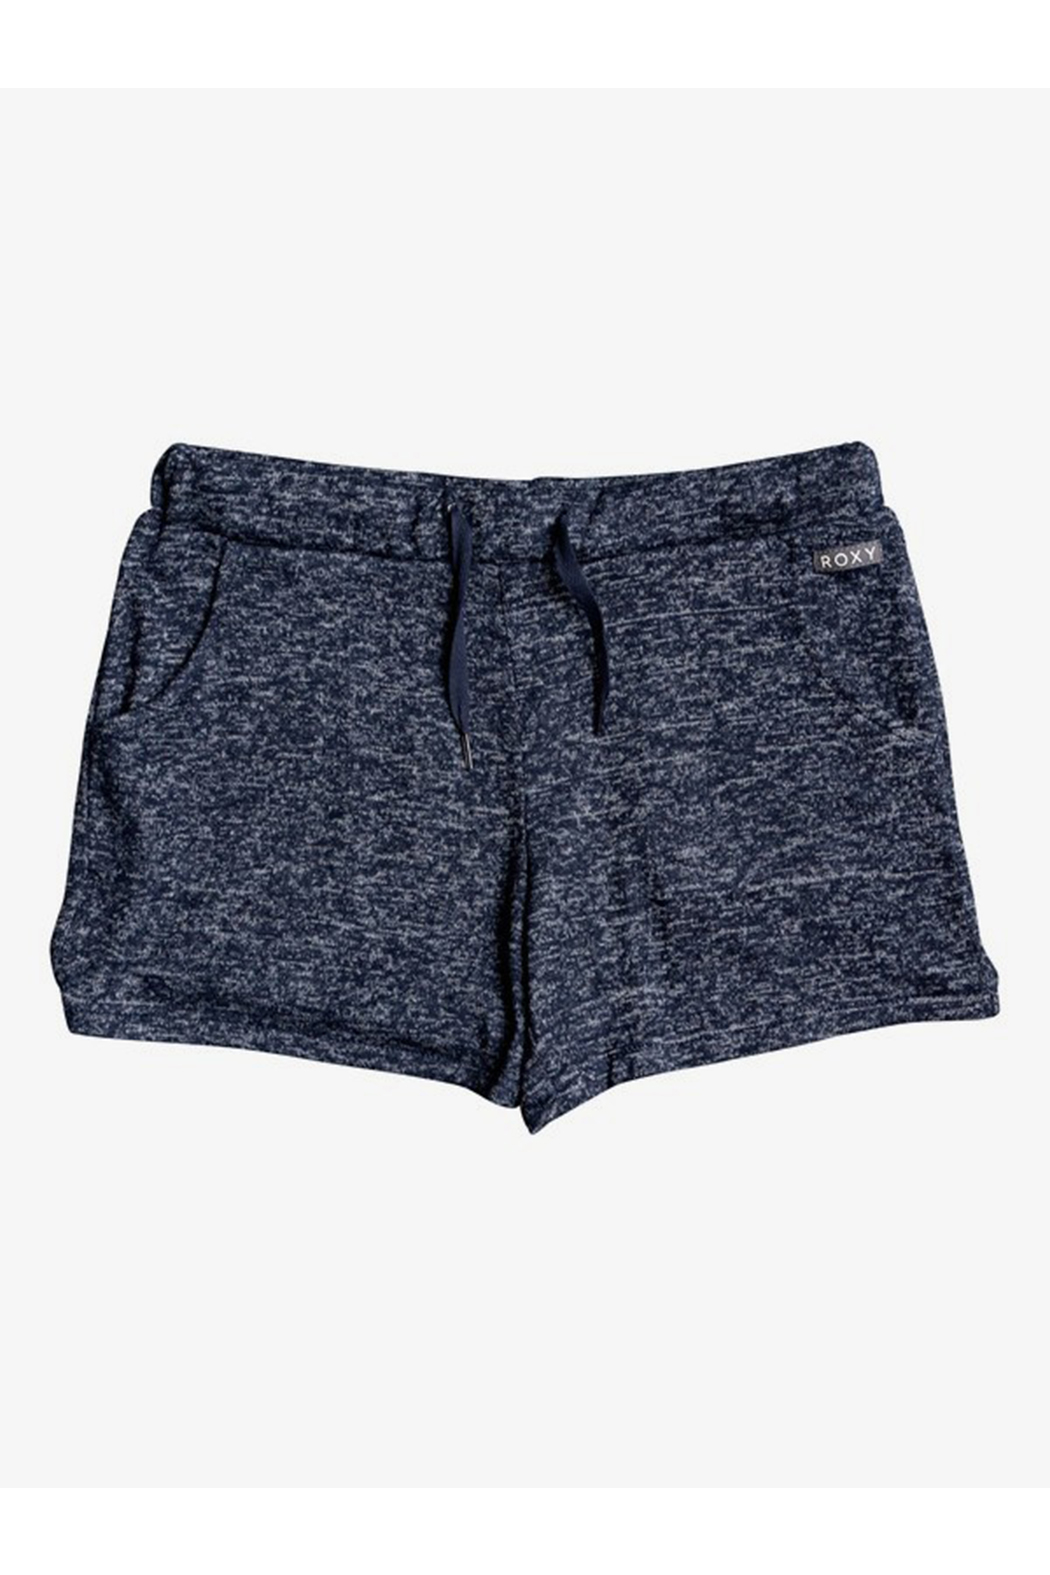 Roxy Great Sweetness Cozy Sweat Shorts - Main Image